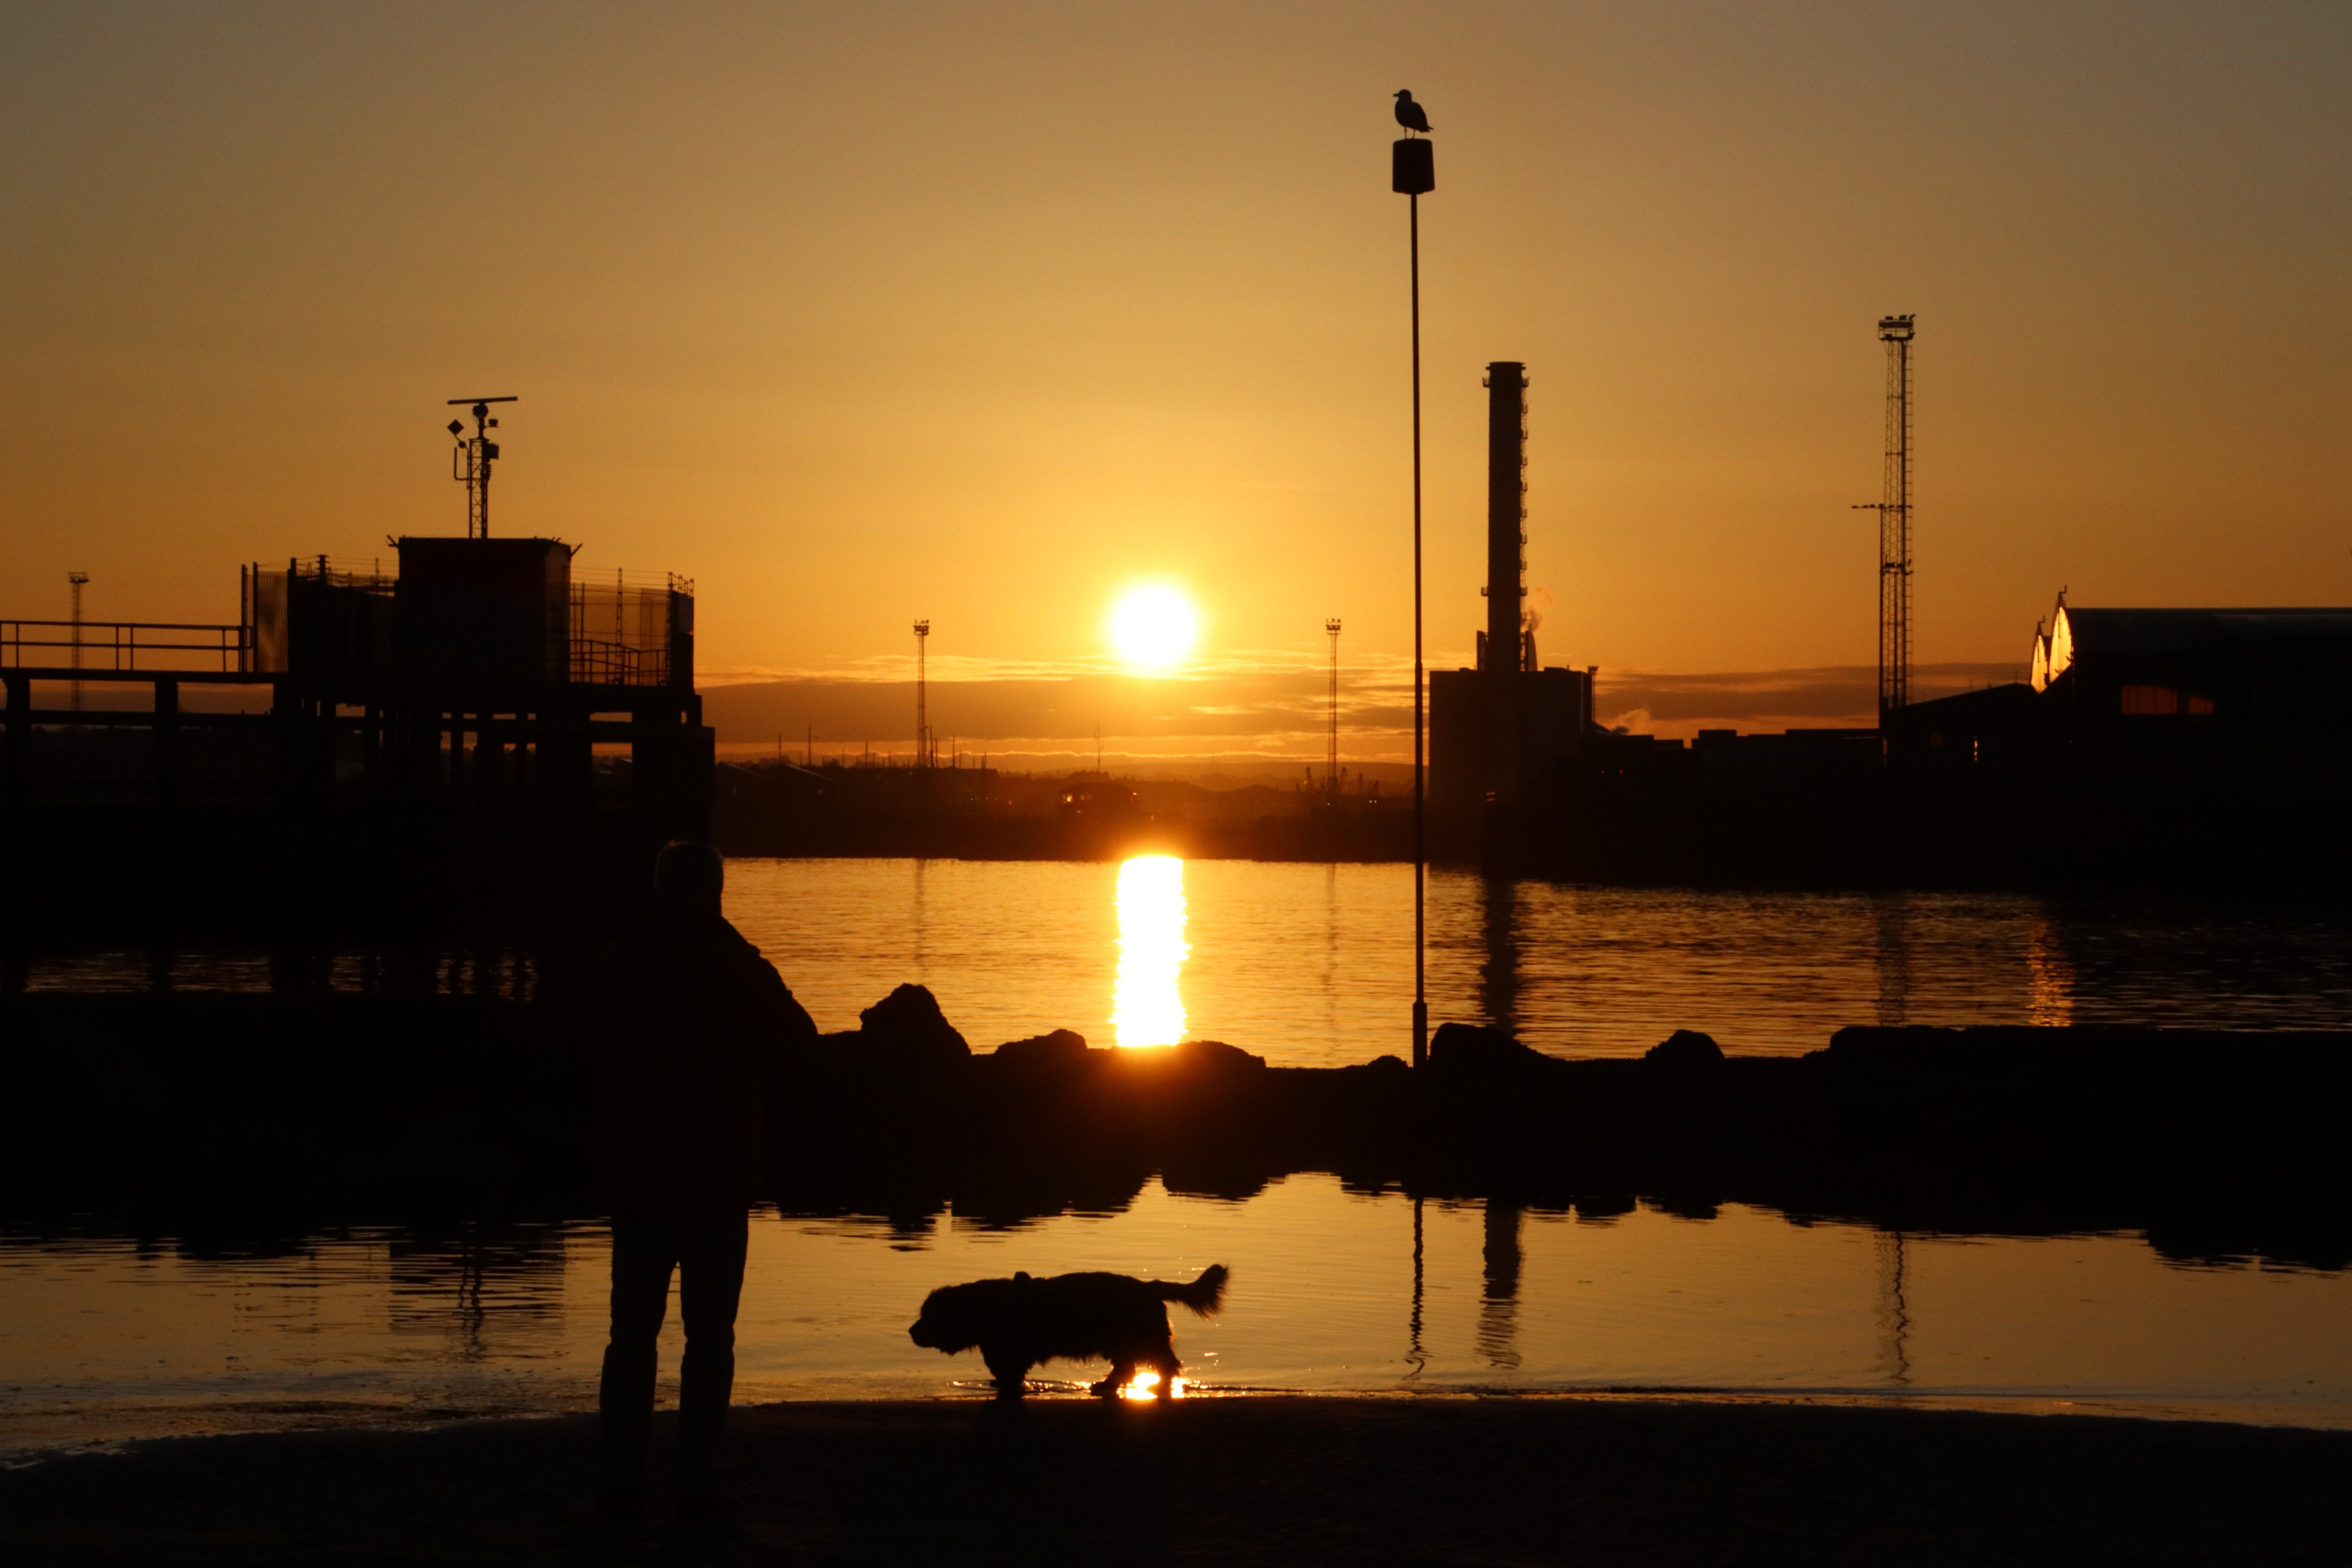 A man and a Sussex spaniel stood at the water's edge watching the sunrise over Shoreham port.